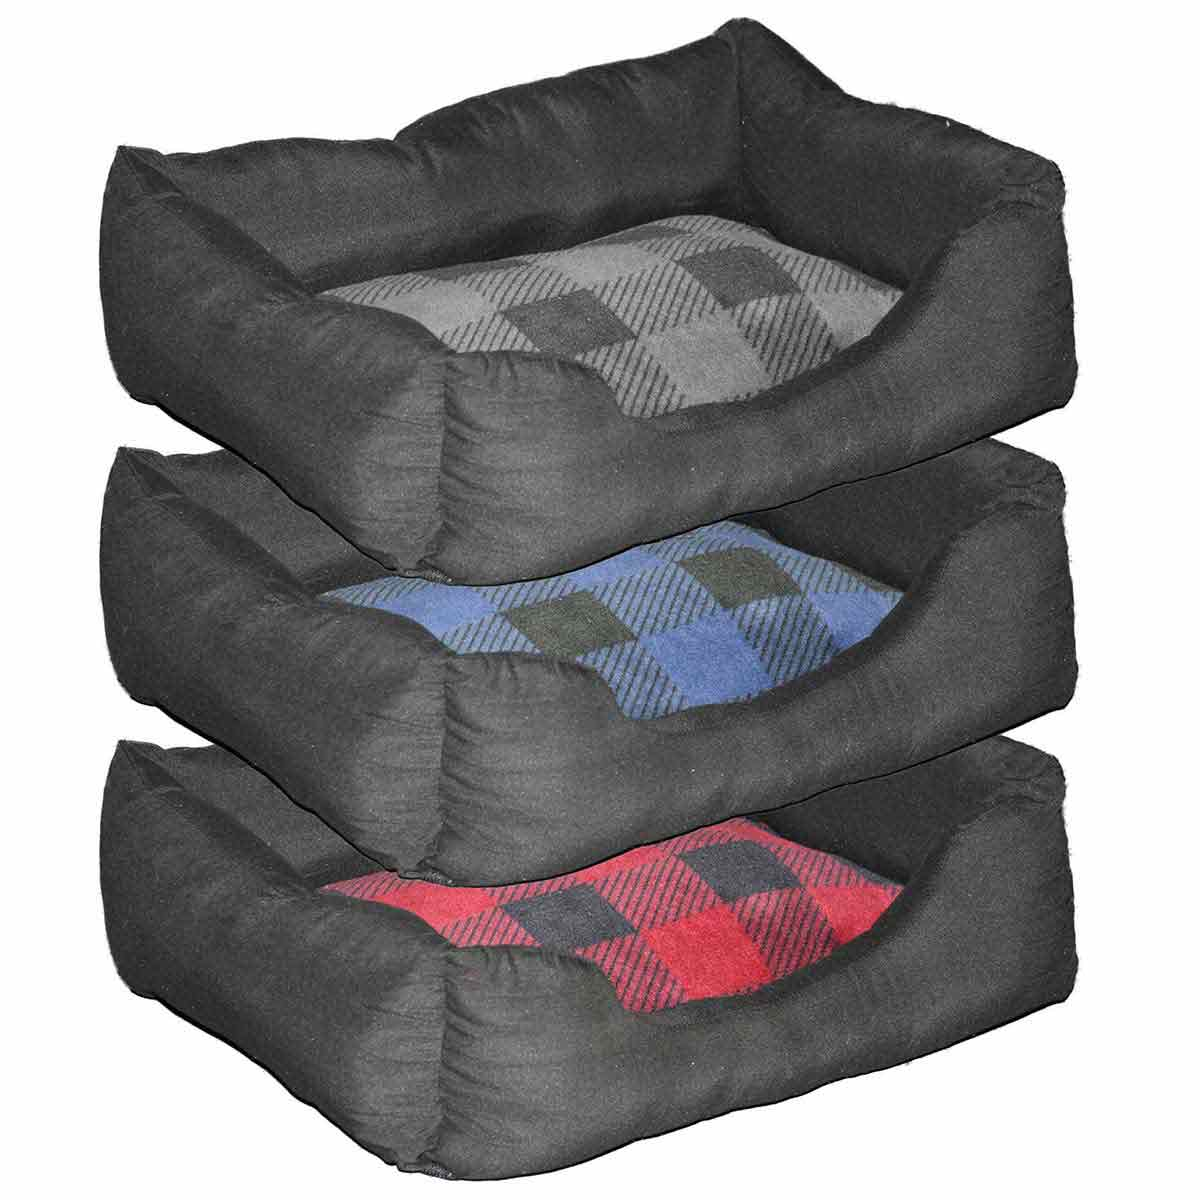 Aspen Pet Buffalo Plaid Dog Bed 20 x 15